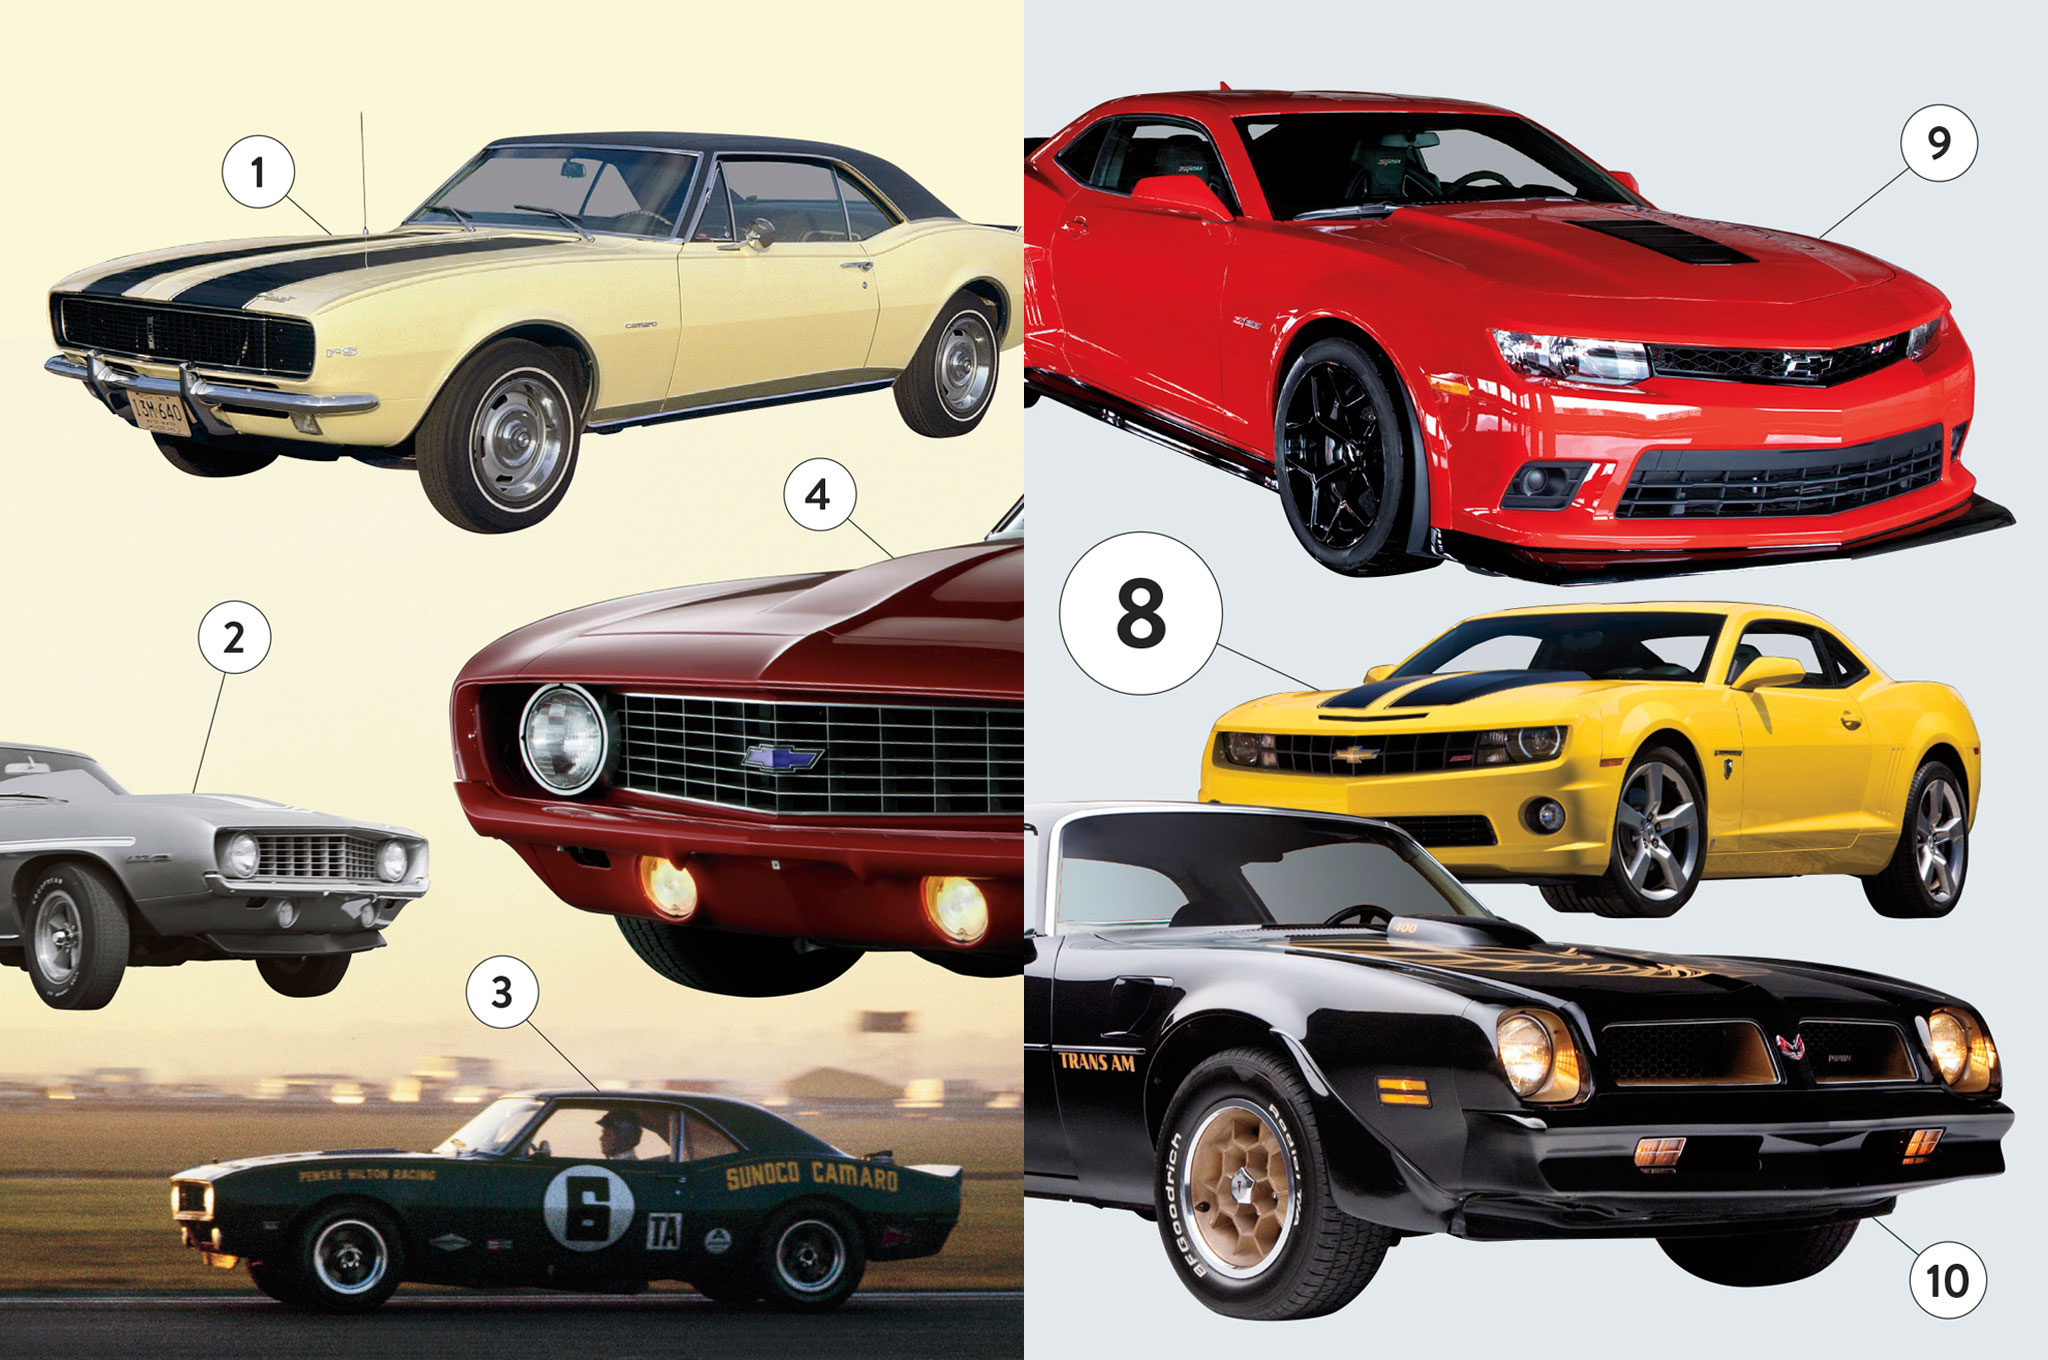 The 10 Greatest Chevrolet Camaros Of All Time 1968 Chevy Camaro Muscle Car Interior 1 11